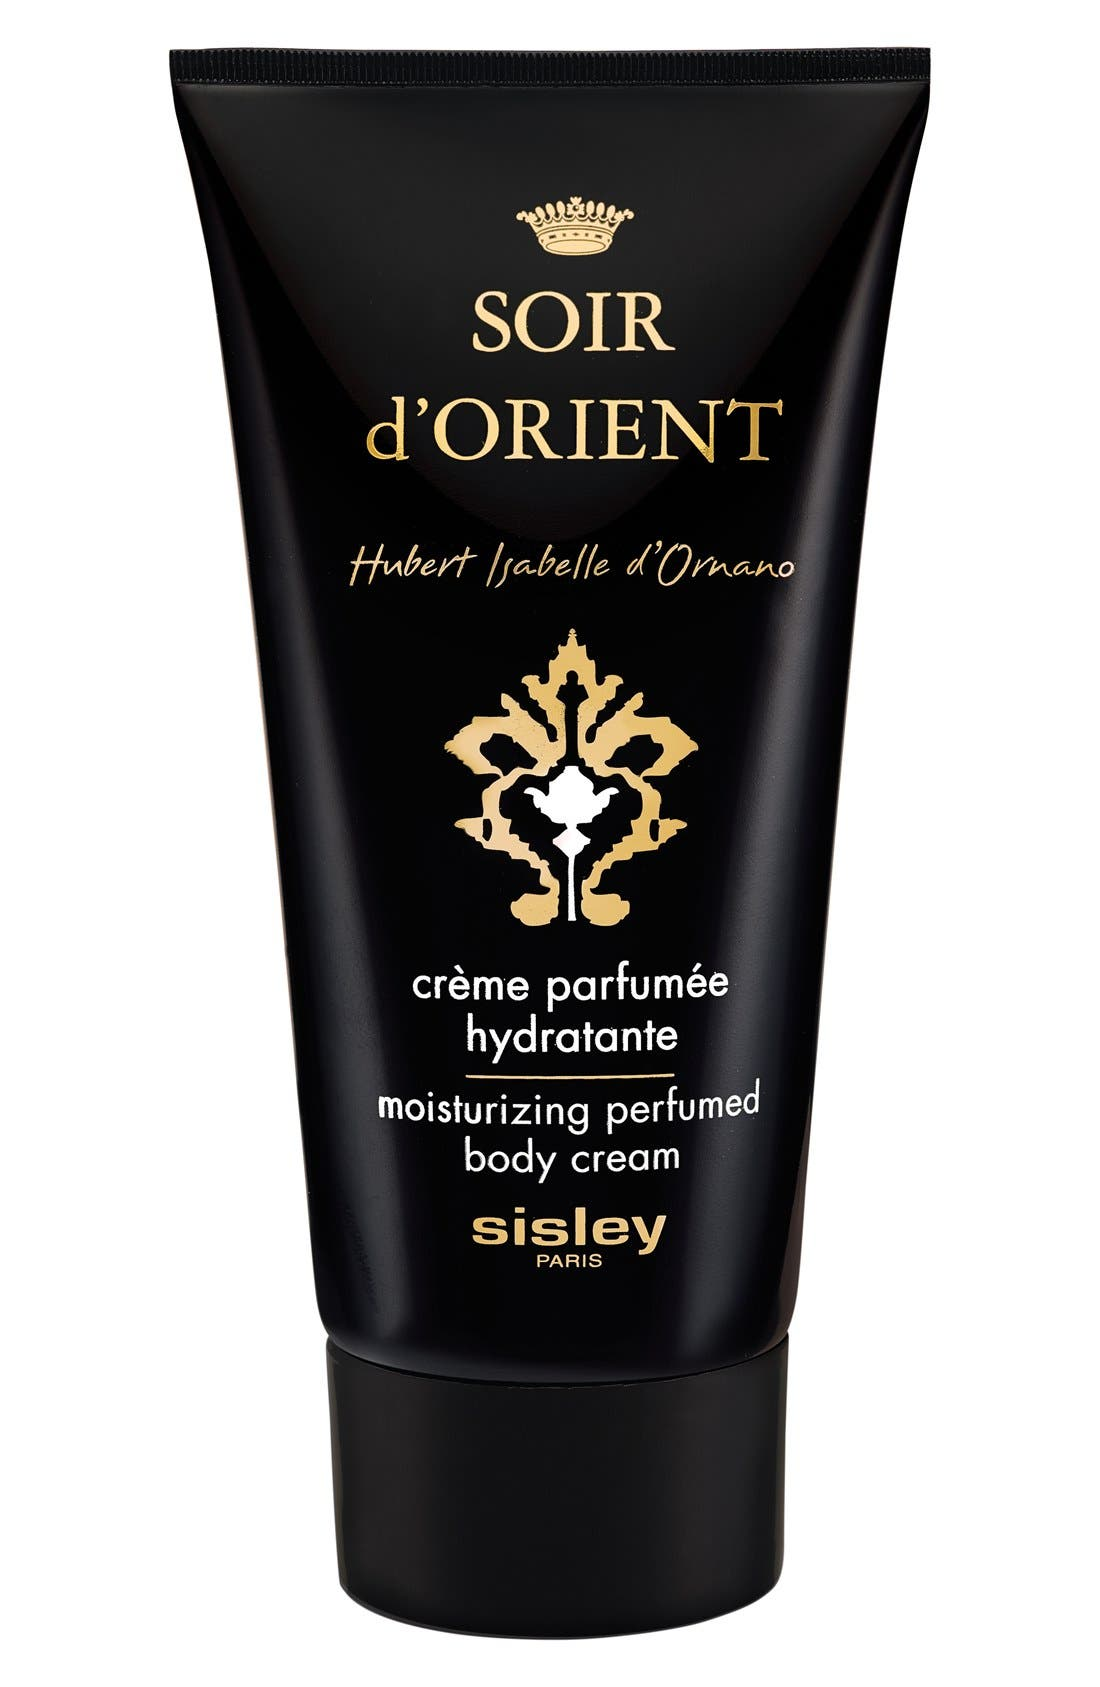 Sisley Paris 'Soir d'Orient' Moisturizing Perfumed Body Cream